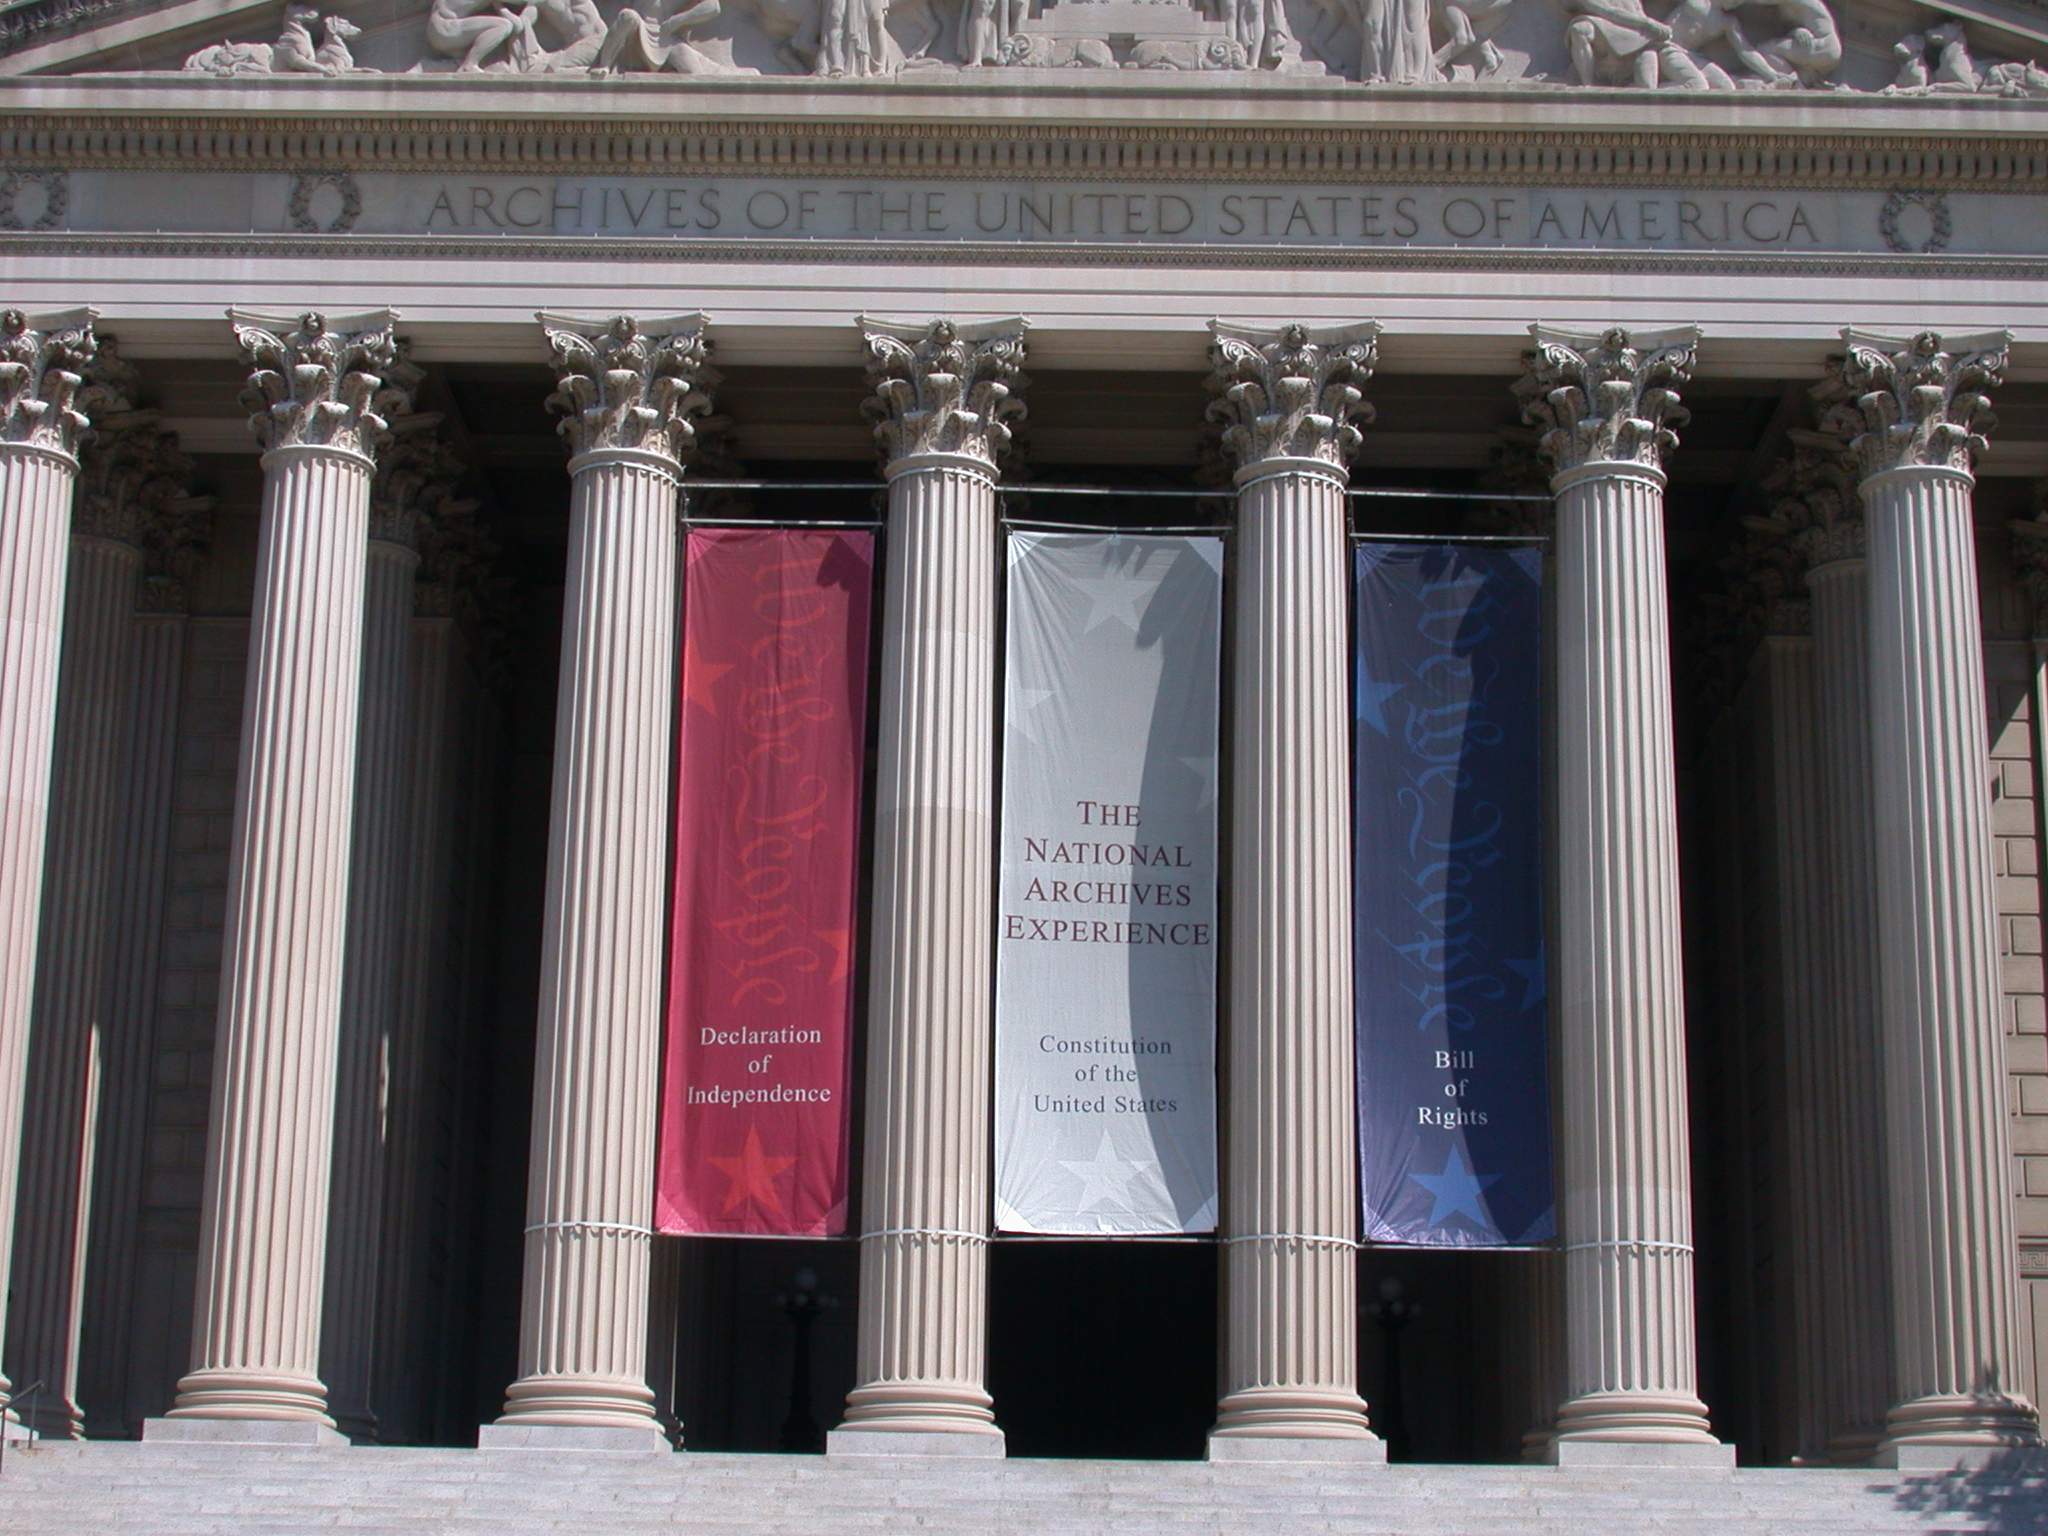 Archives I Building with Banners